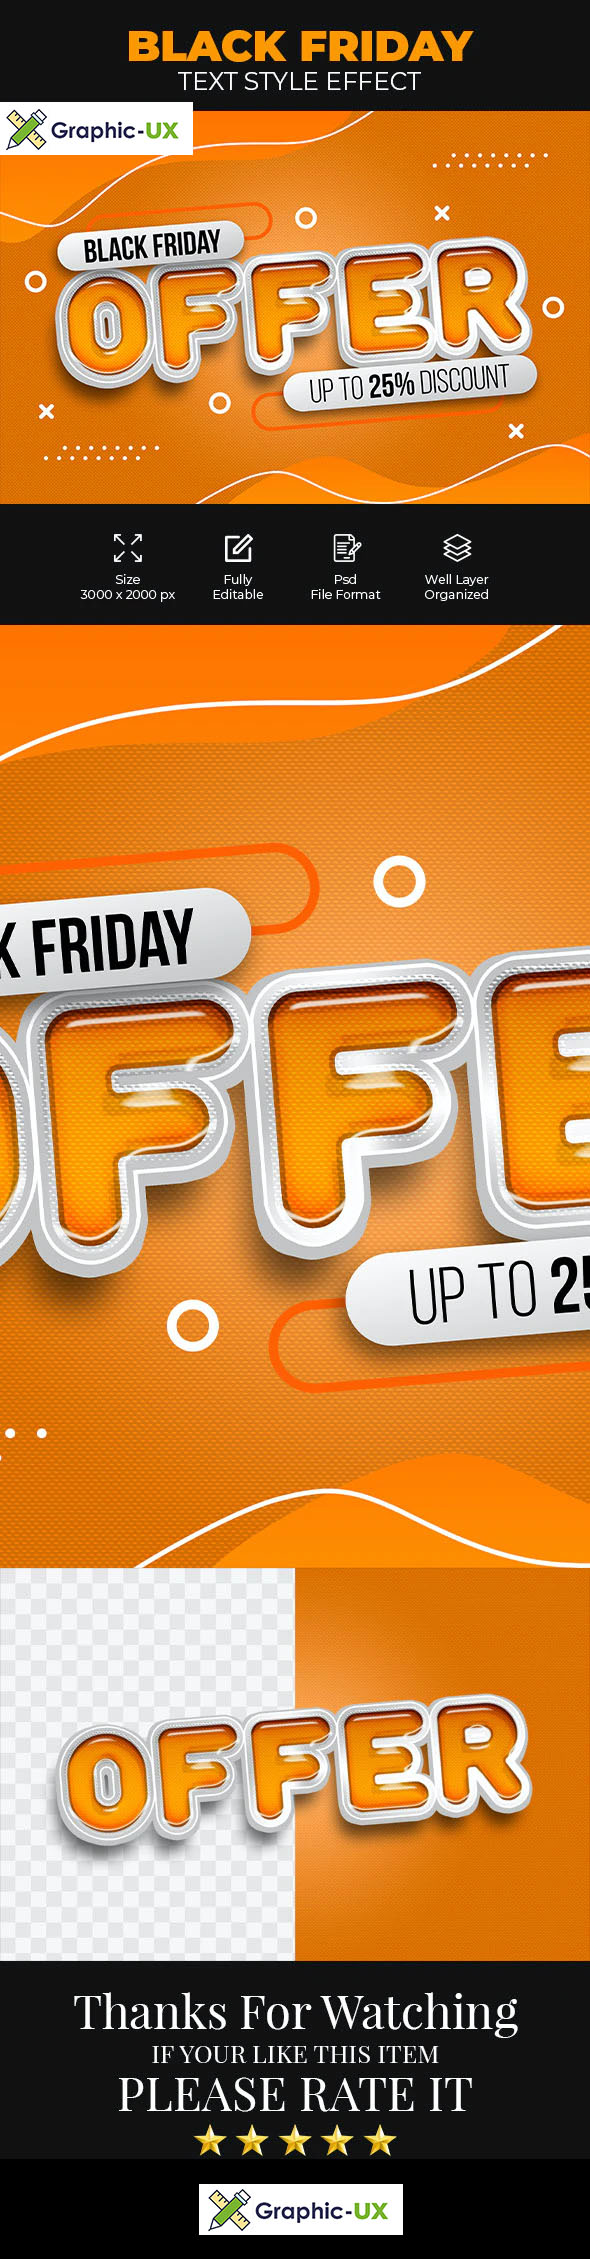 Black Friday Offer Psd Text Style Effect